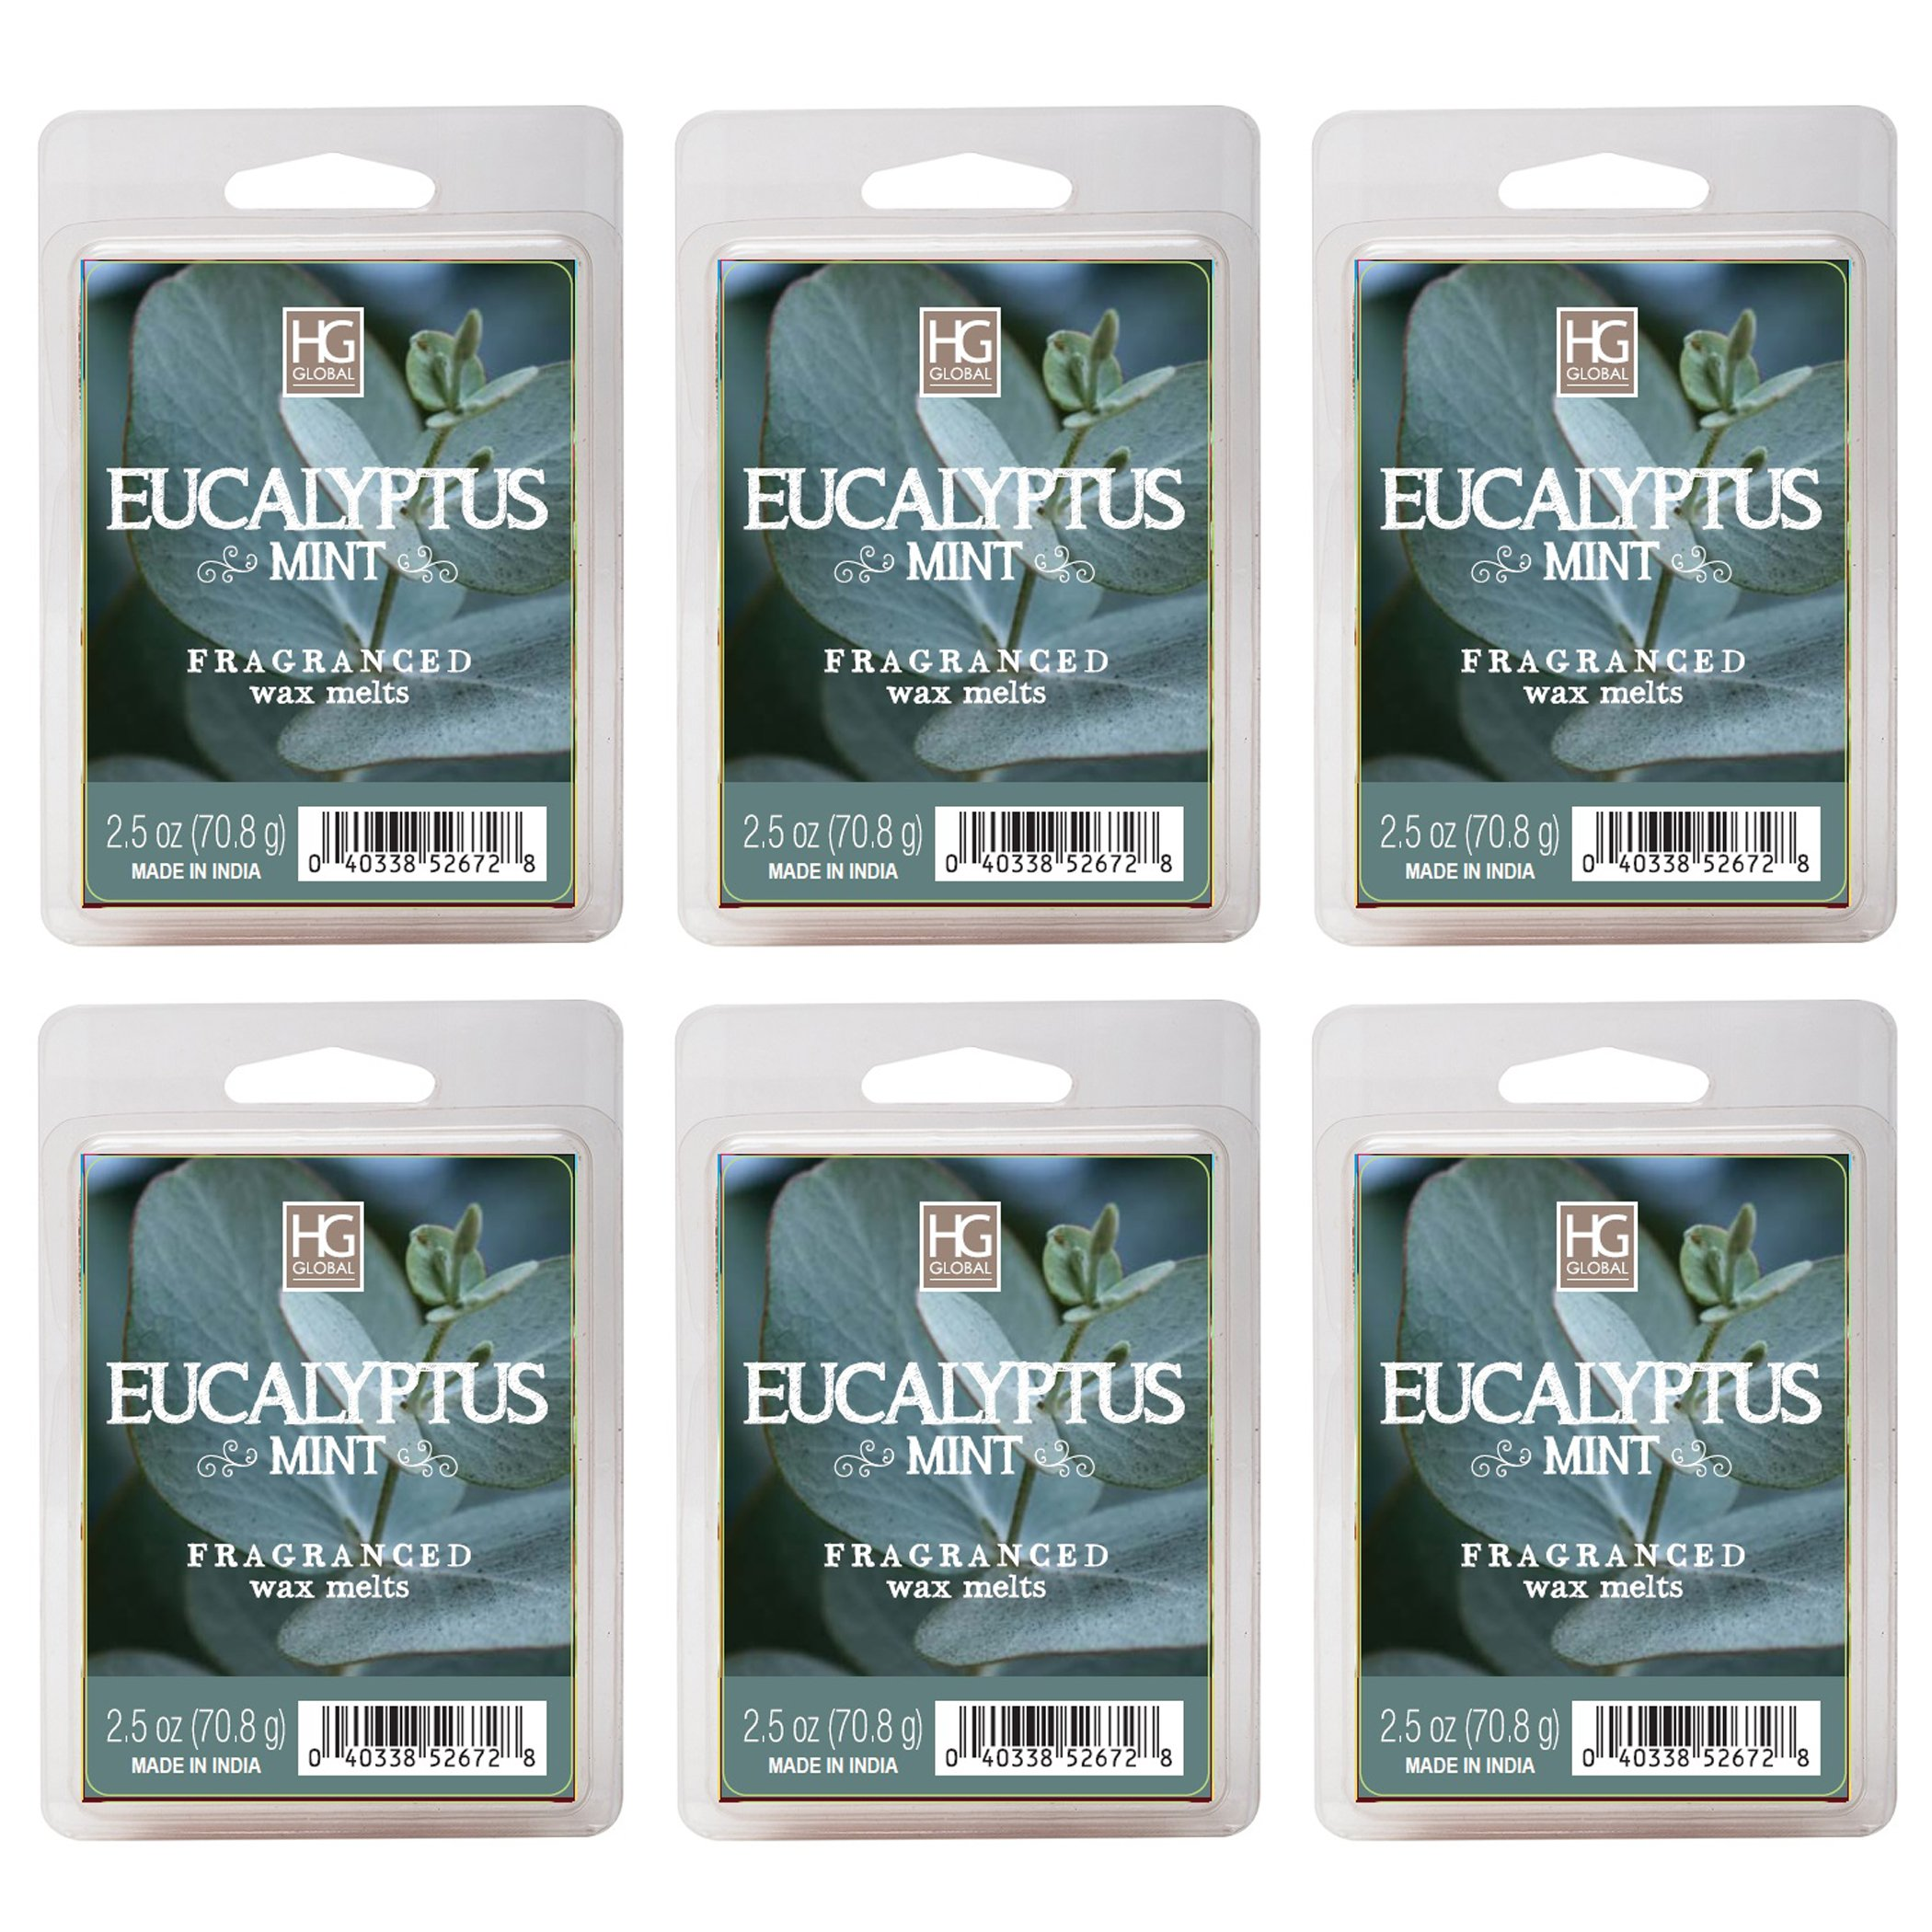 Hosley's Eucalyptus Mint Wax Cubes - Set of 6 / 2.5 oz each. Hand poured Wax Infused with Essential Oils. Perfect for Everyday Use, Wedding, Events, Aromatherapy, Spa, Reiki, Meditation. O3